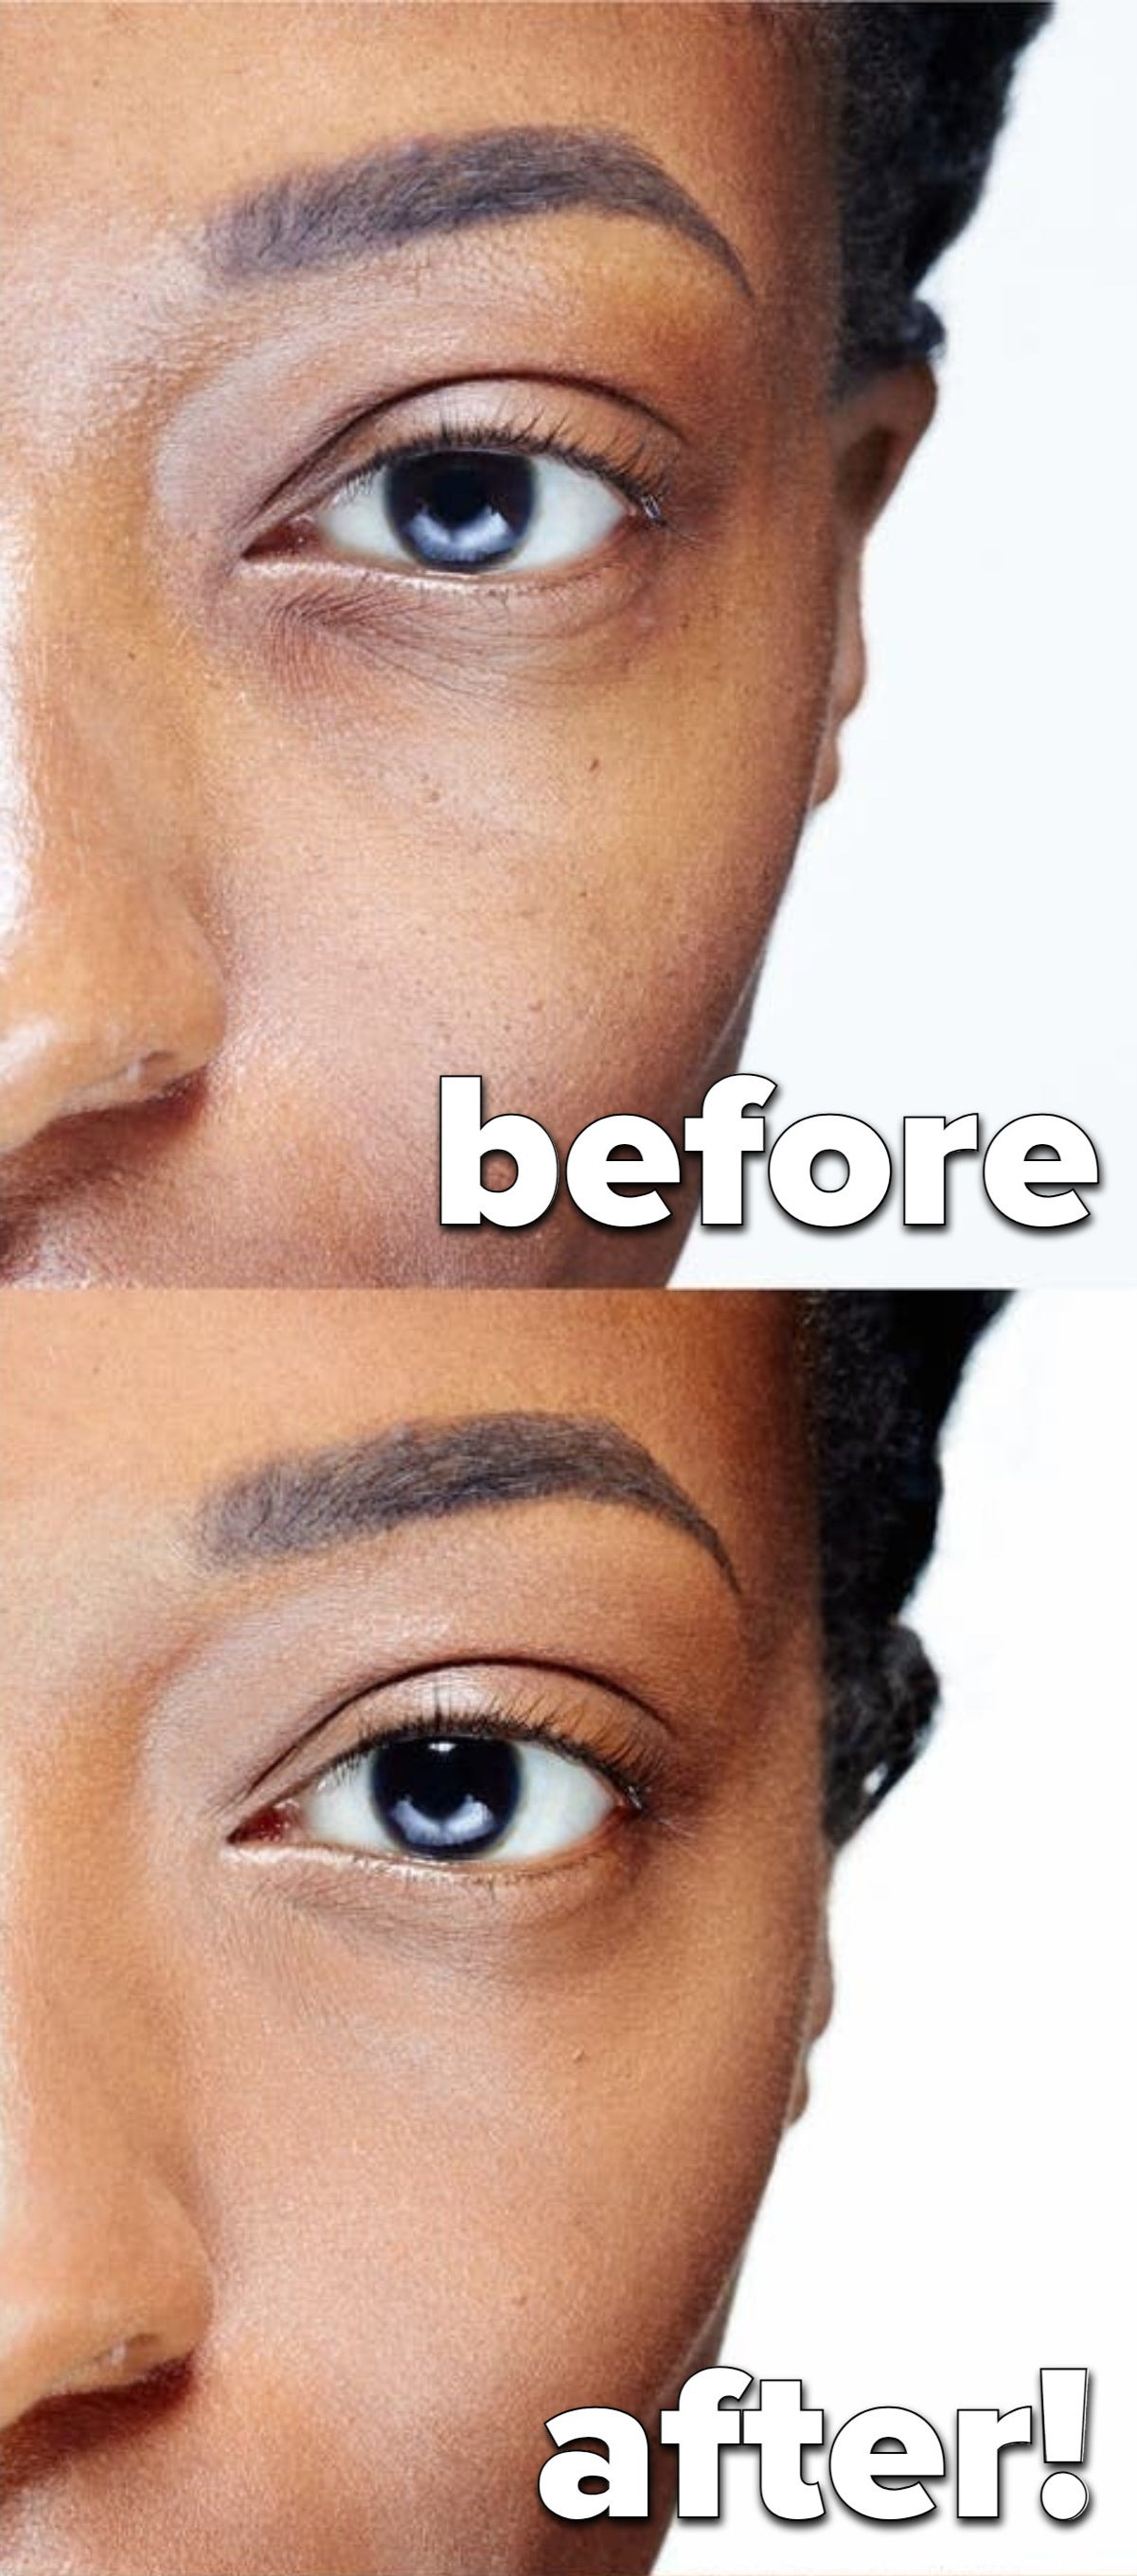 A model without the concealer on / a model with the concealer on